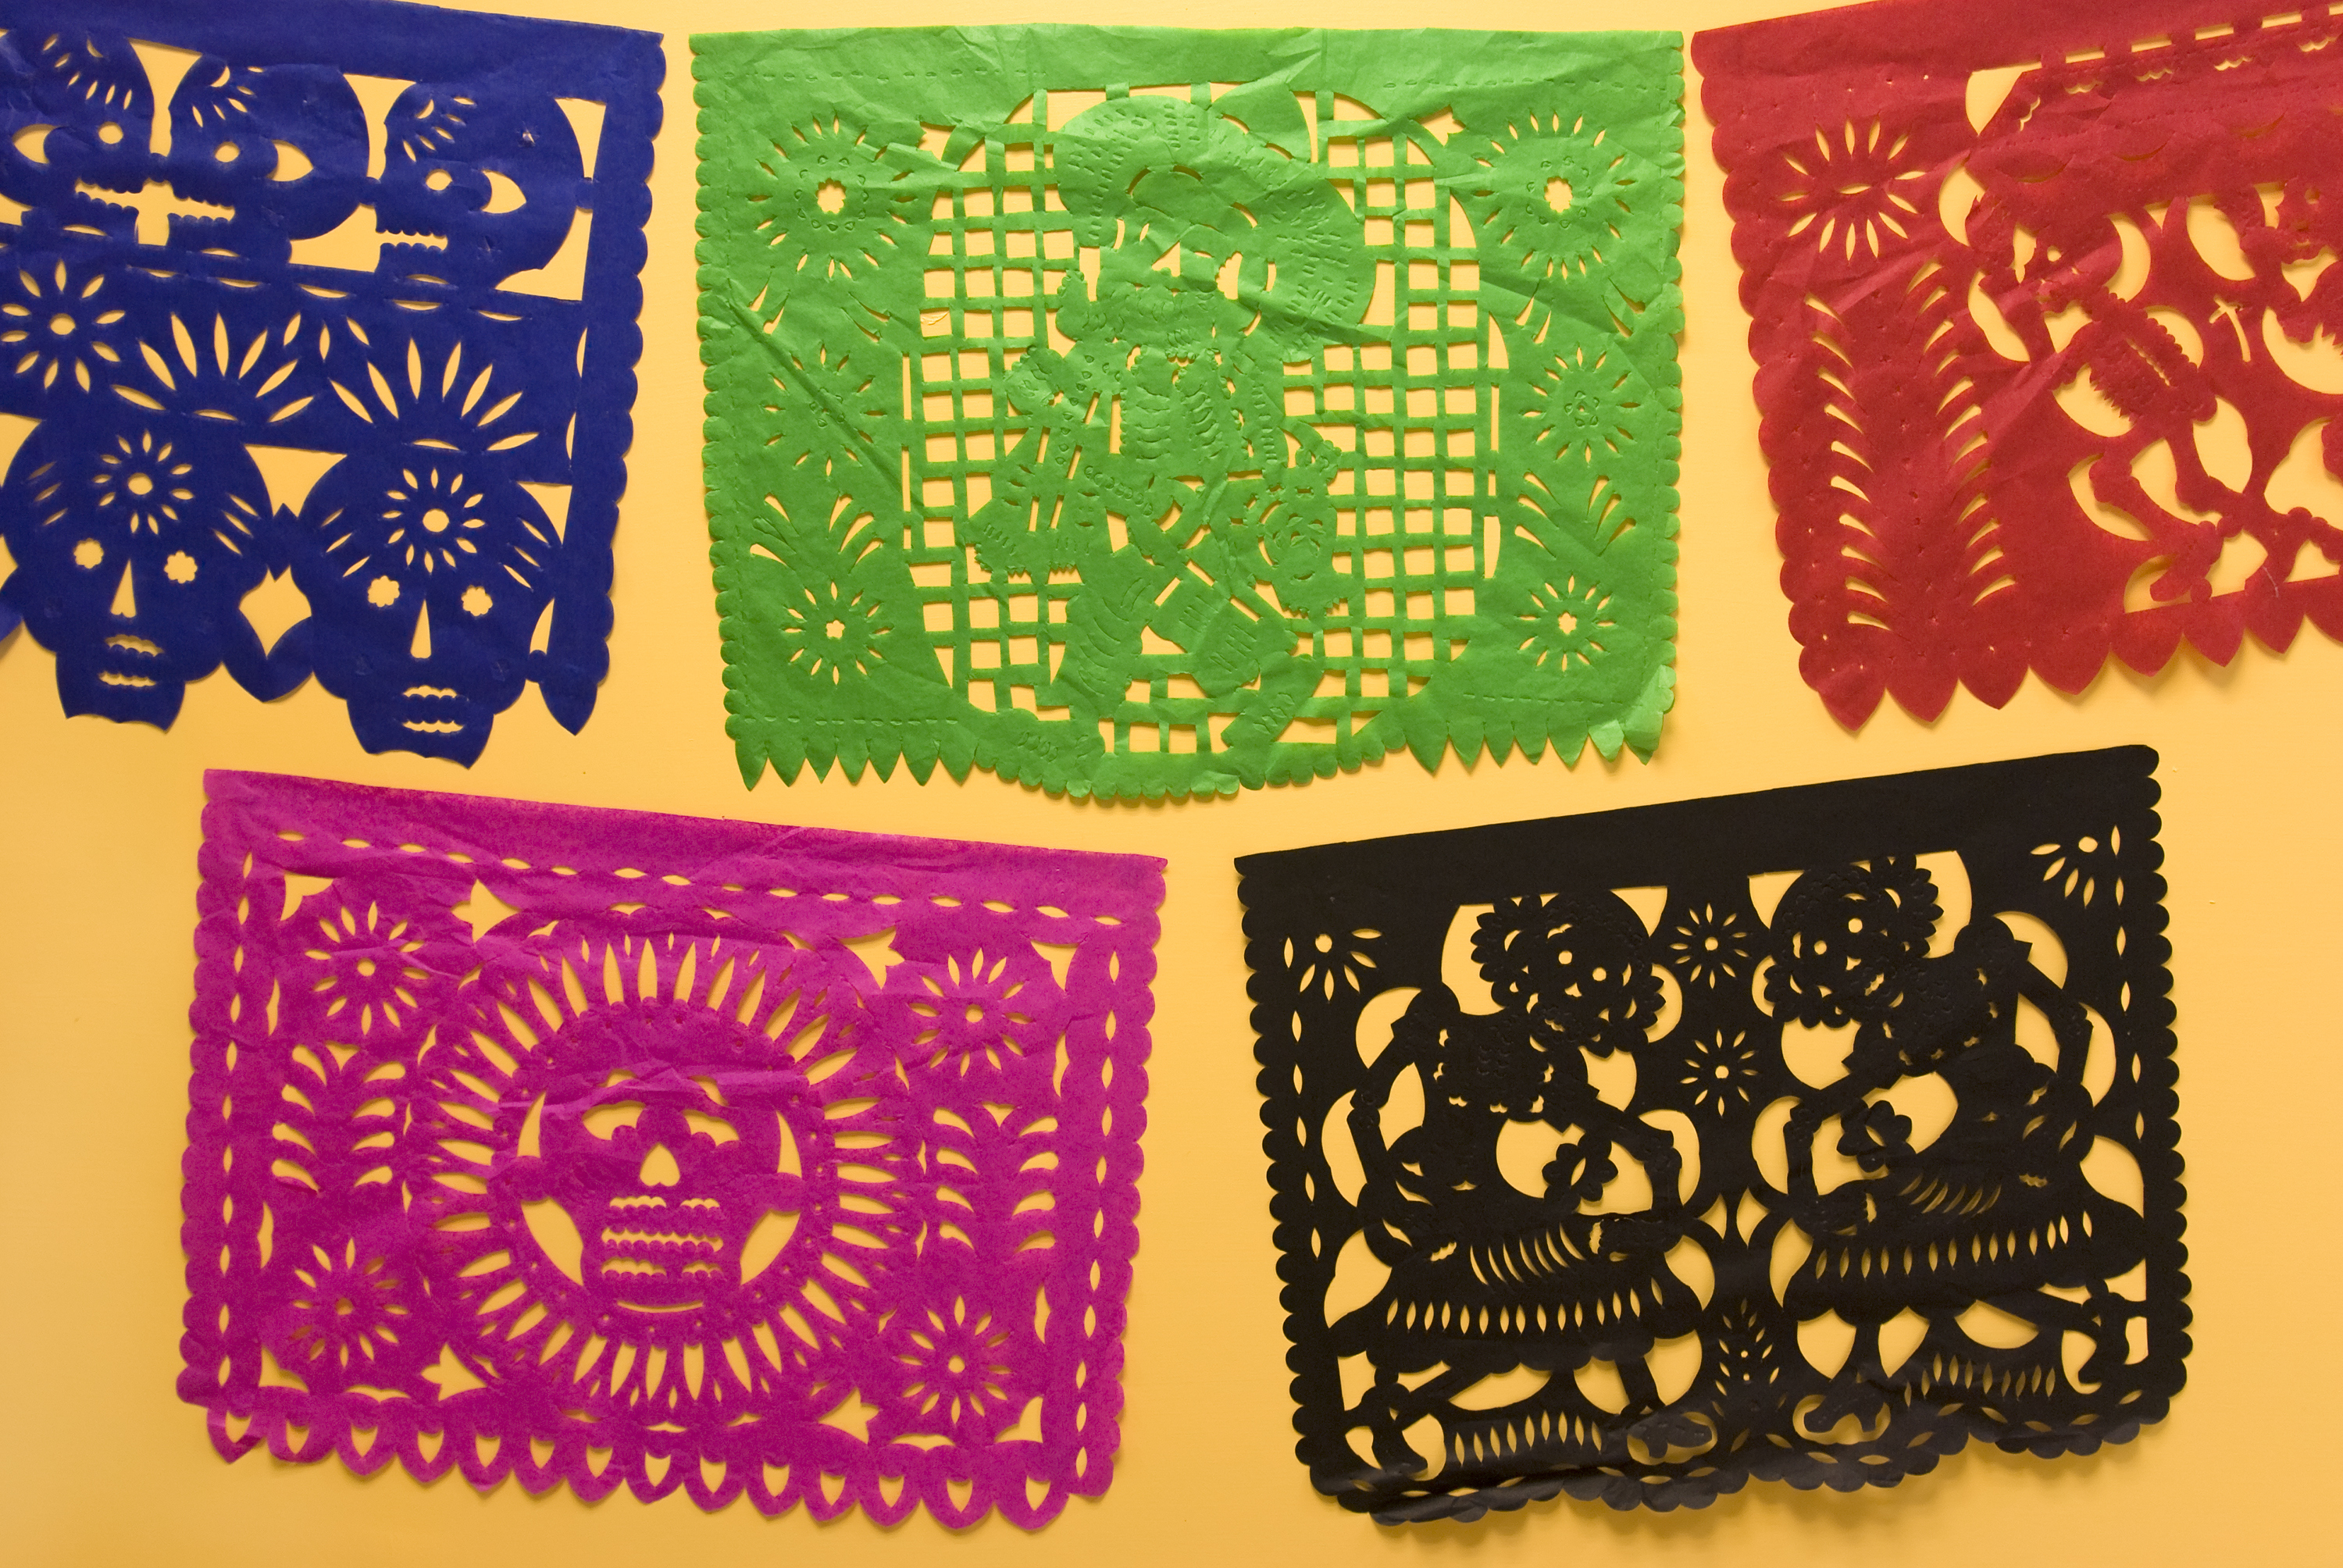 Papel Picado with MasPaz